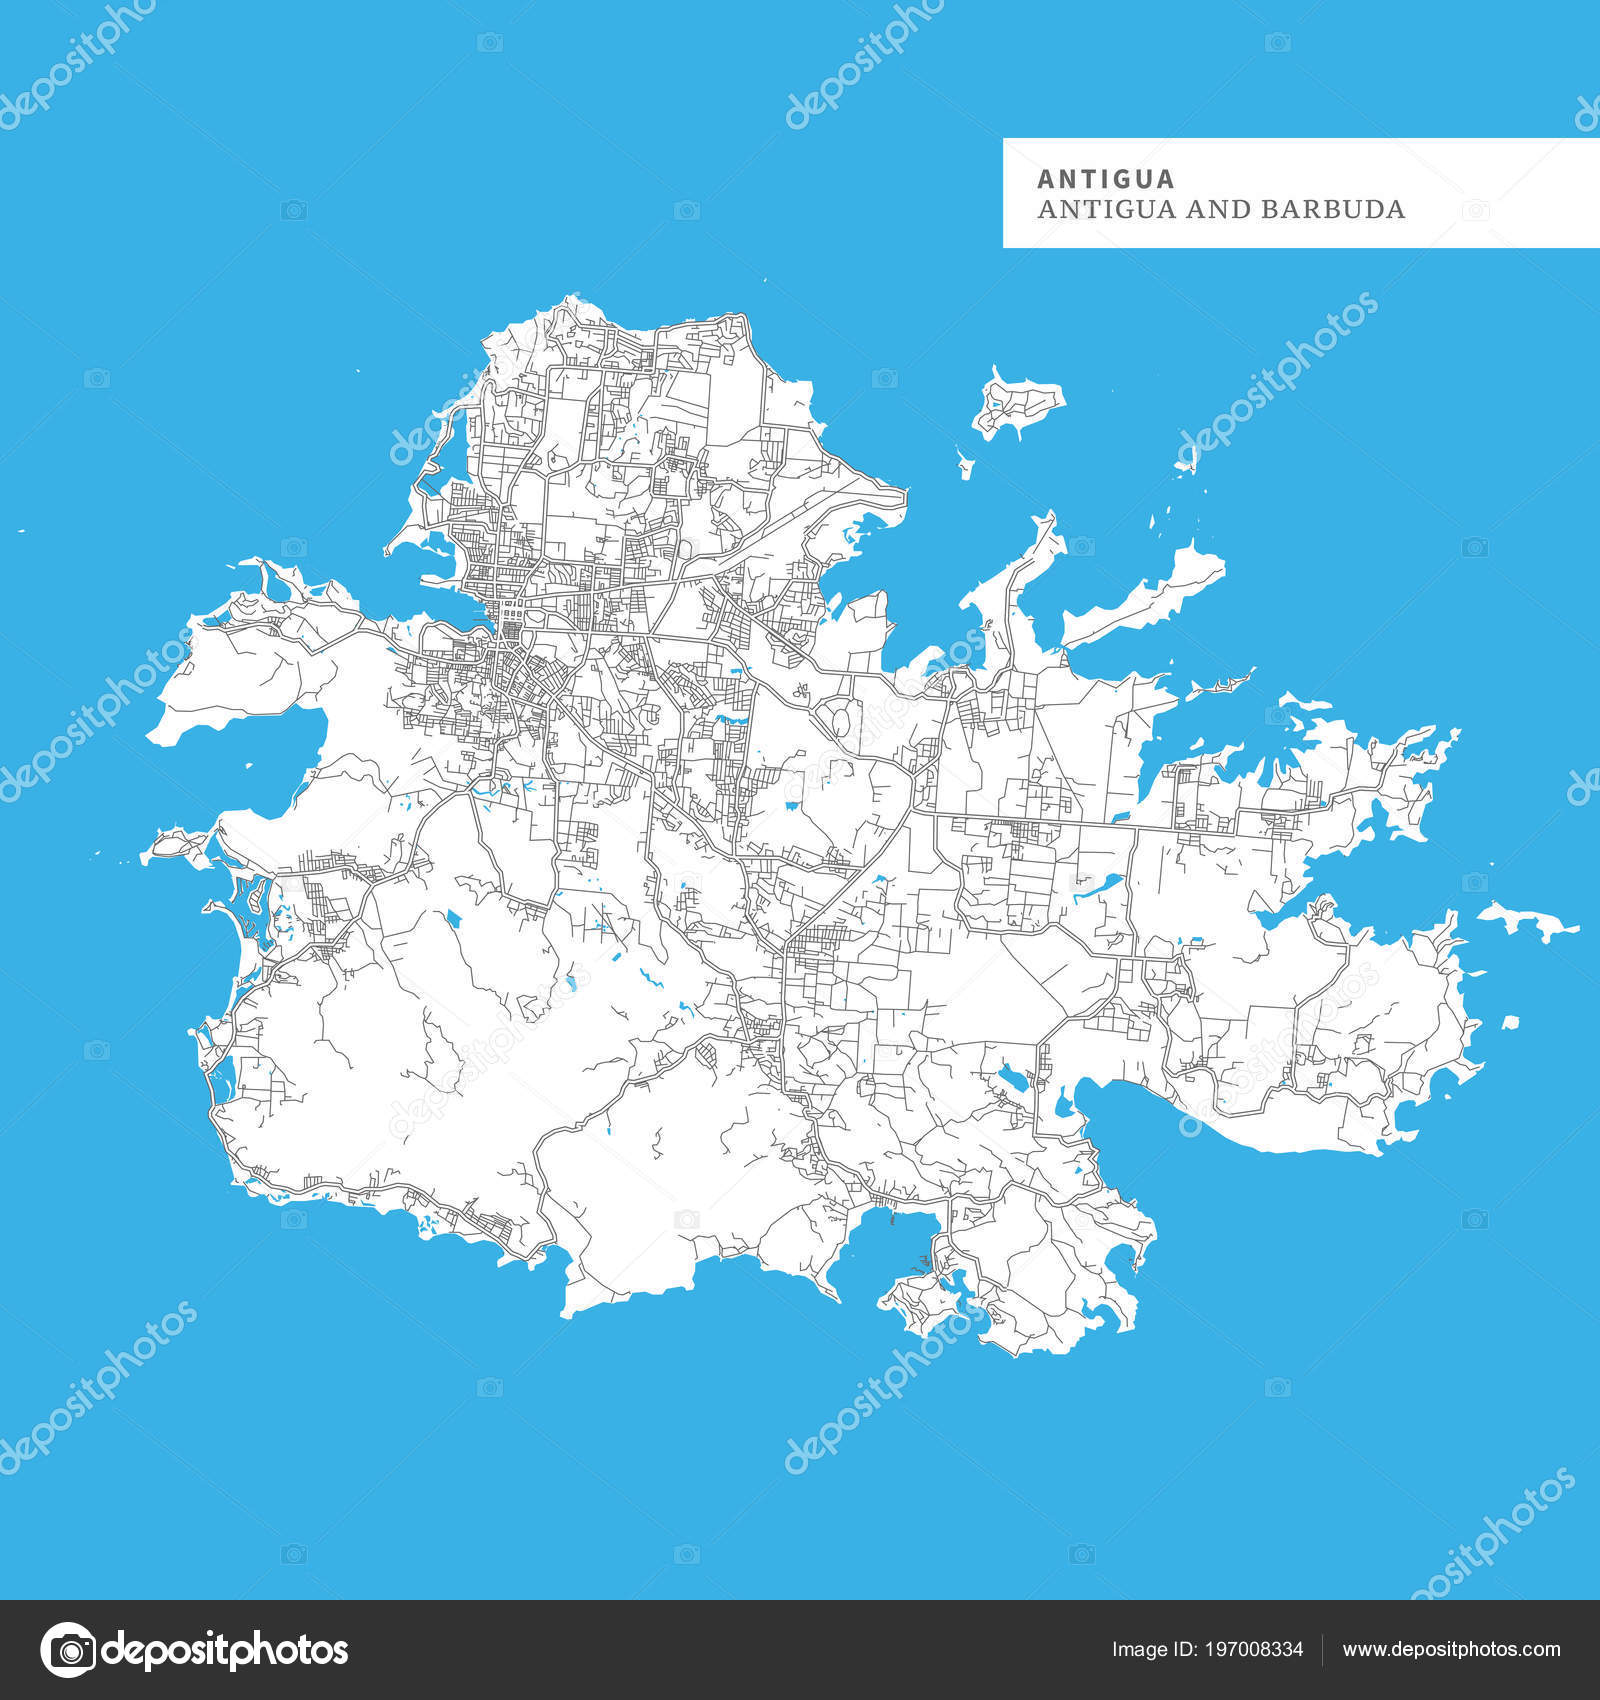 Map Antigua Island Antigua Barbuda Contains Geography Outlines Land ...